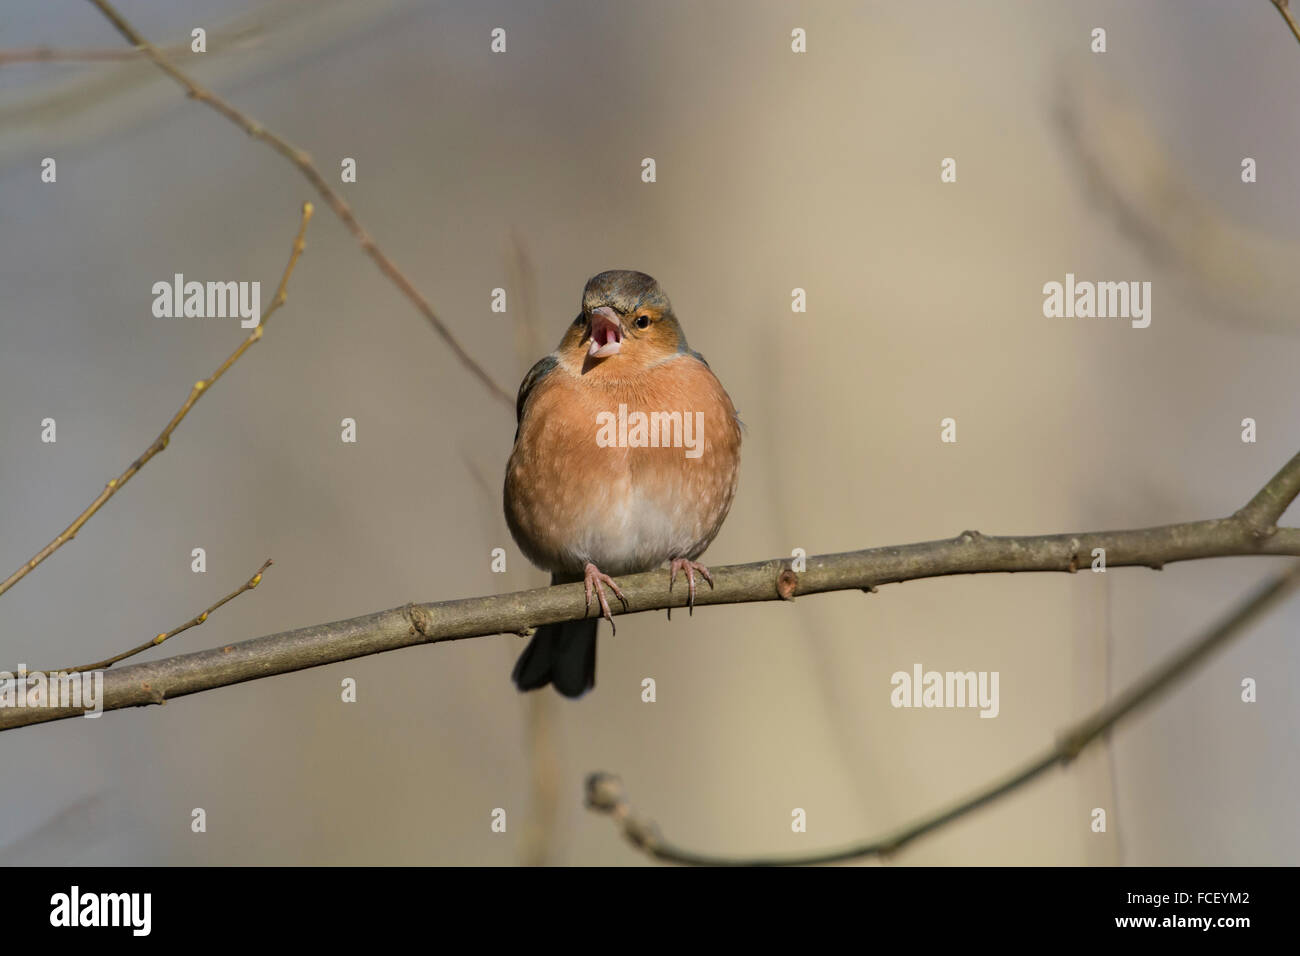 Chaffinch (Fringilla coelebs). Male with open beak perched on a twig. - Stock Image